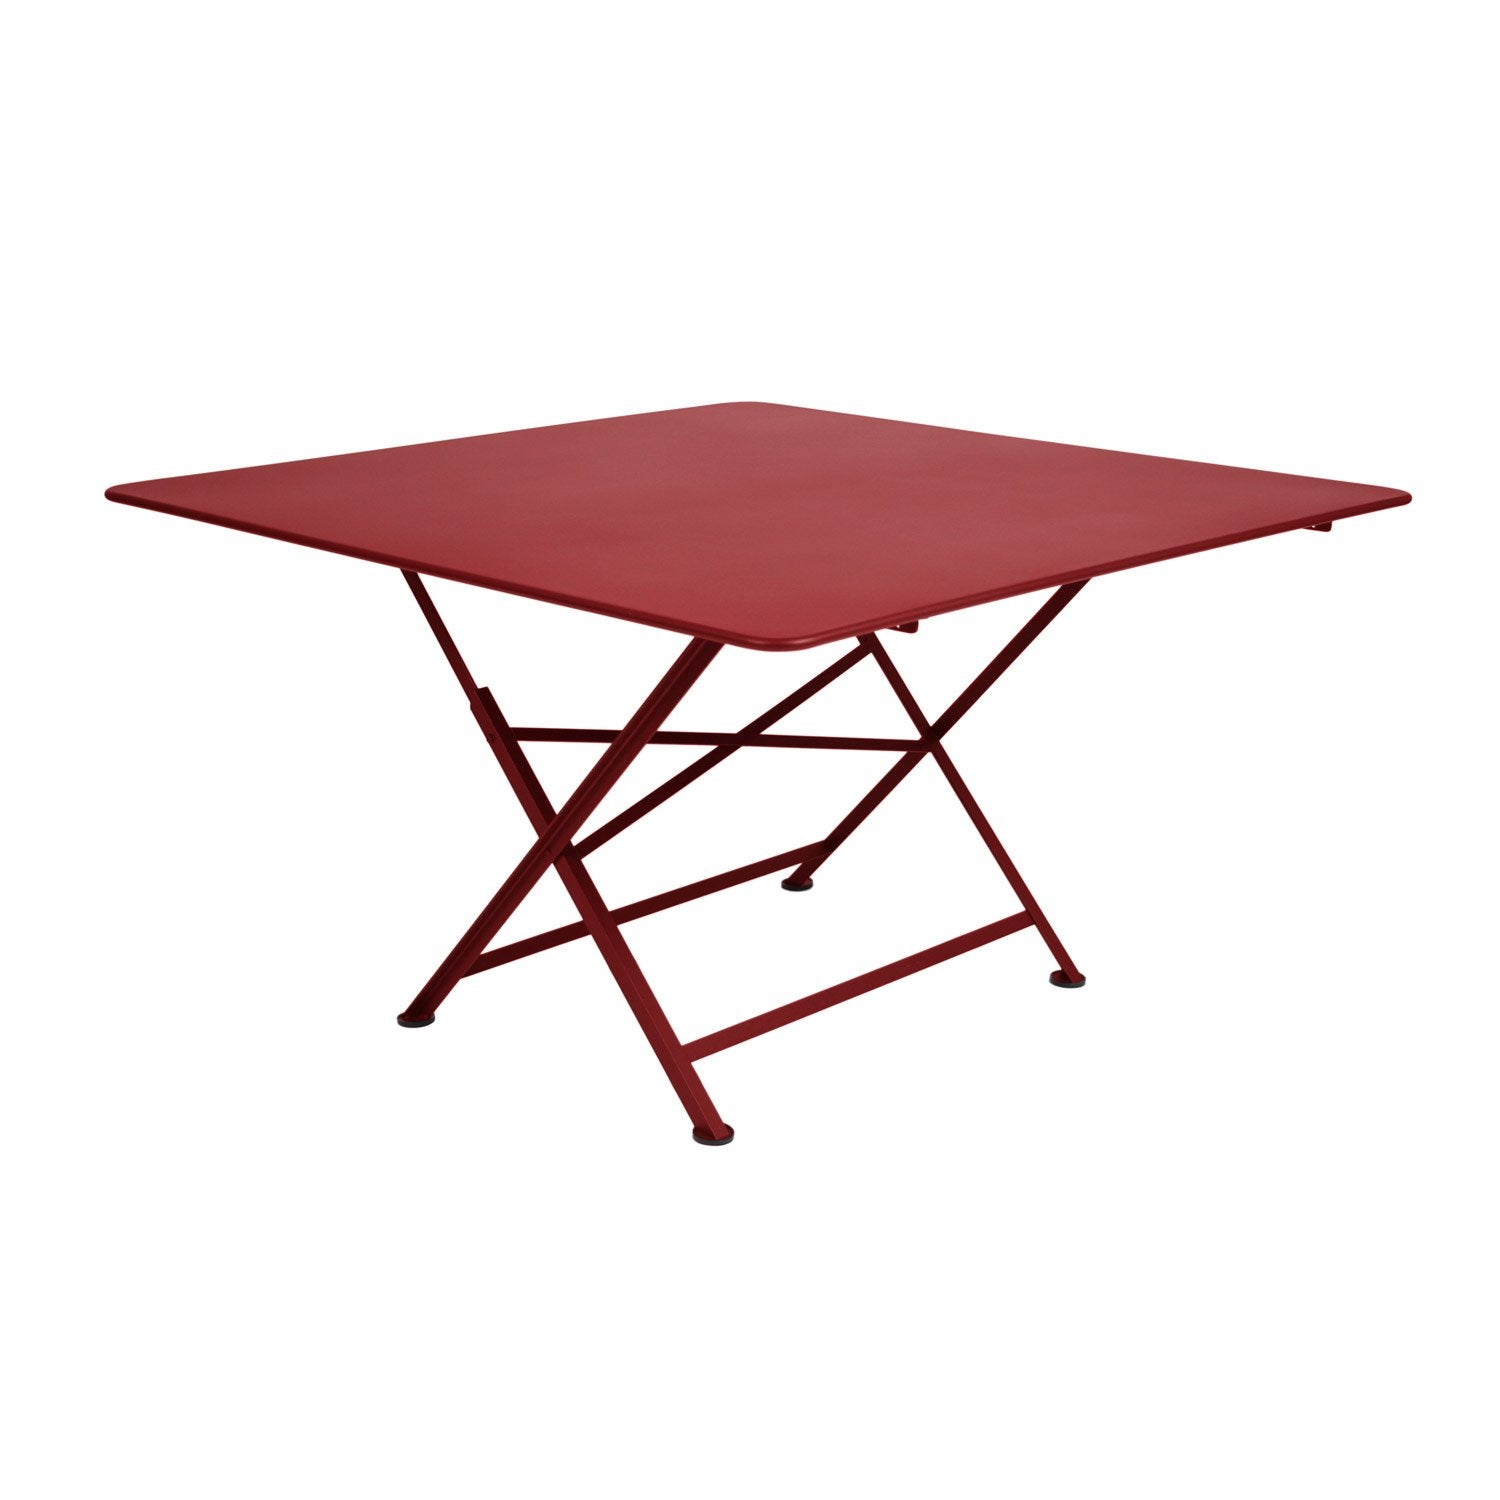 Table de jardin fermob cargo carr e piment 8 personnes for Table de jardin terrasse